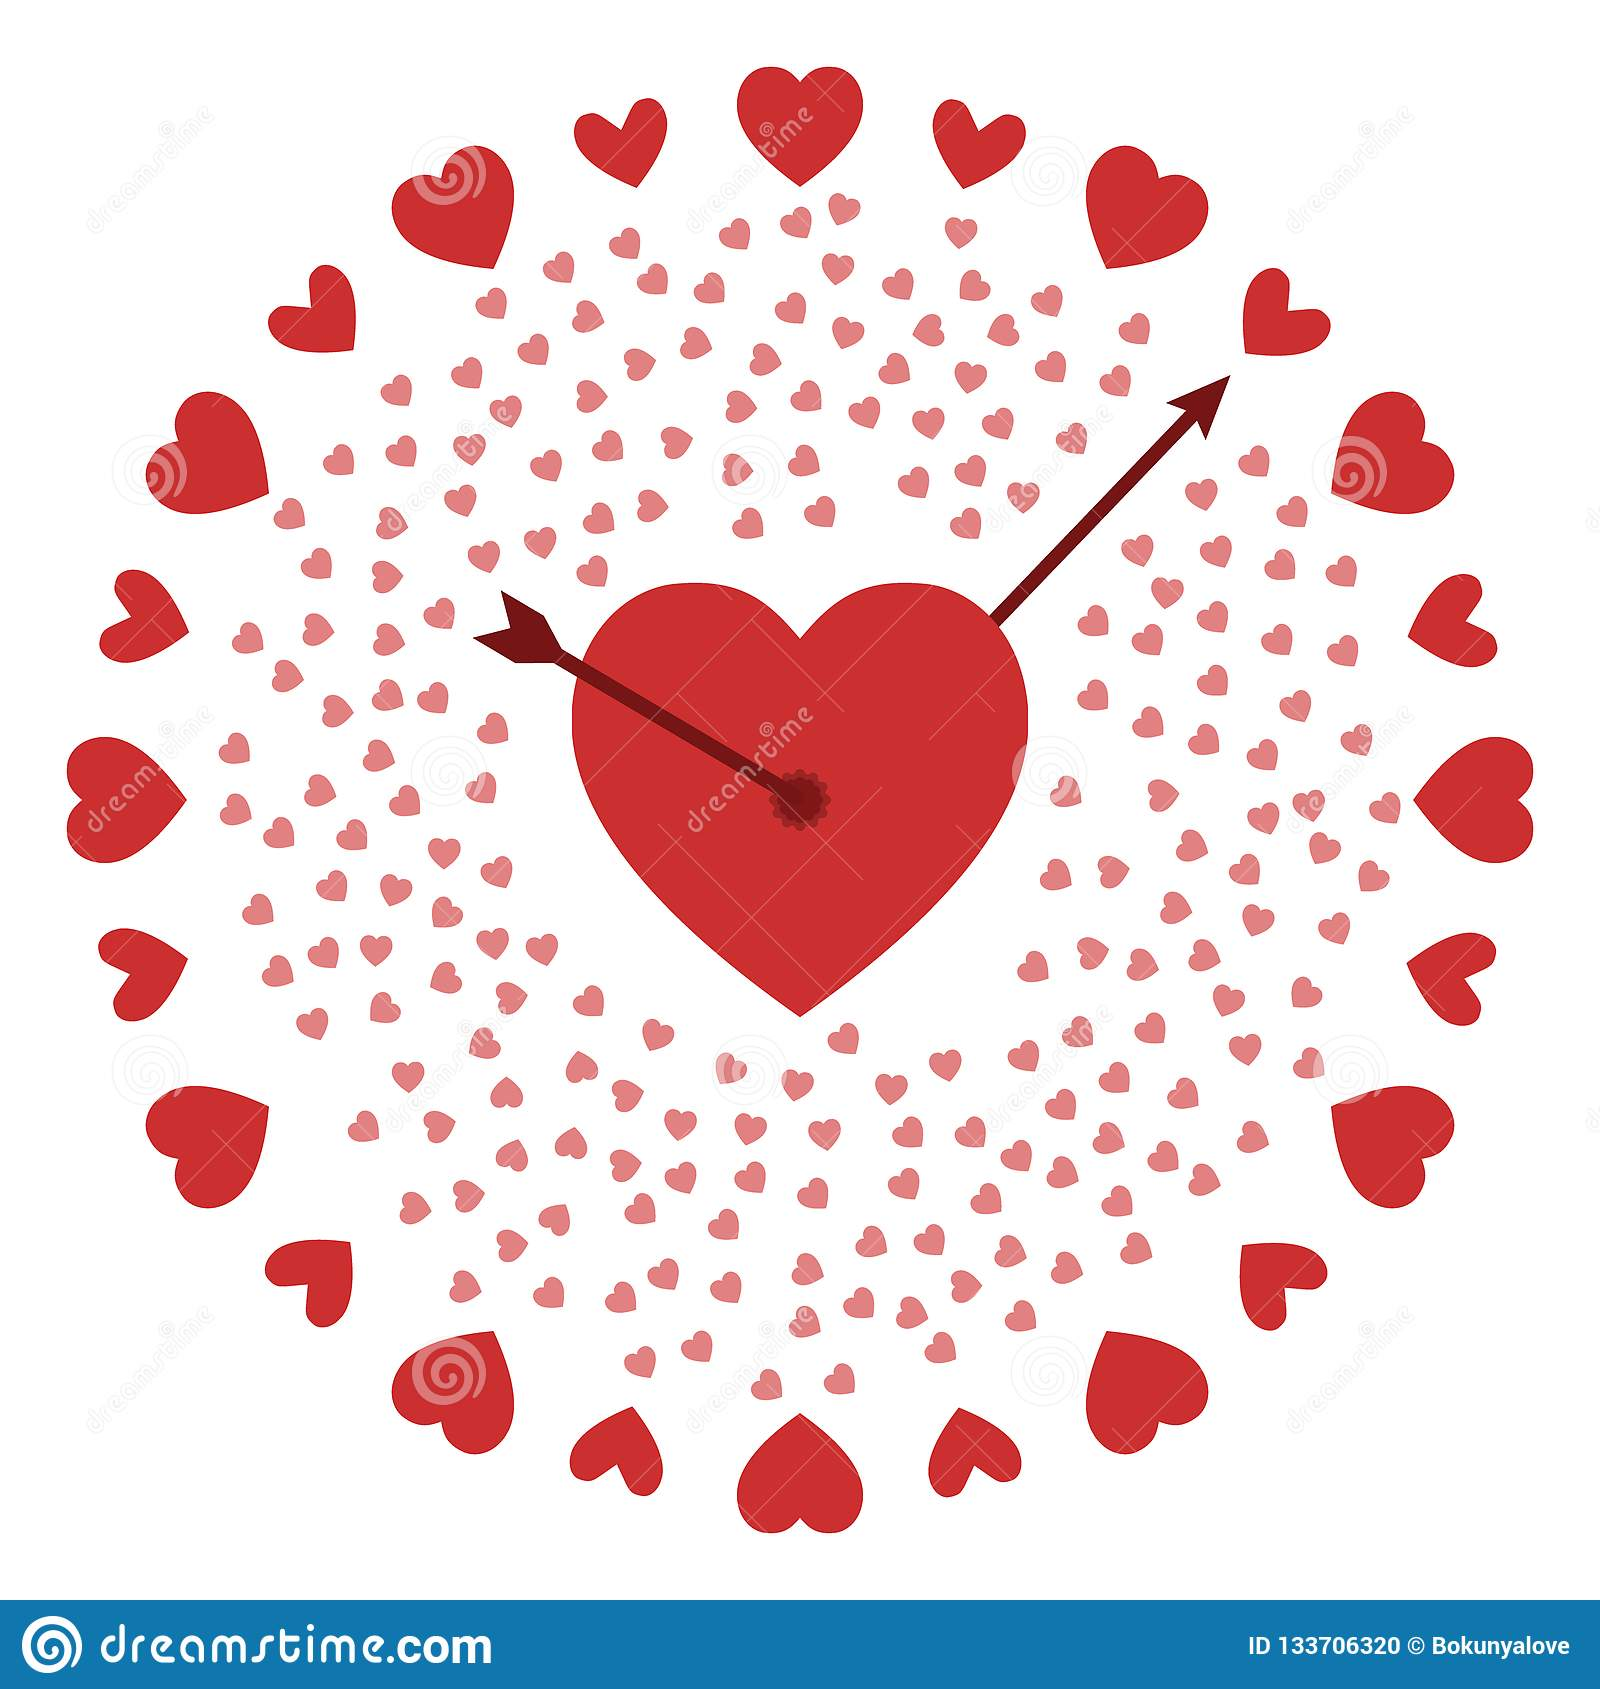 Stylish Watch Hearts For A Gift To A Loved One Stock Vector